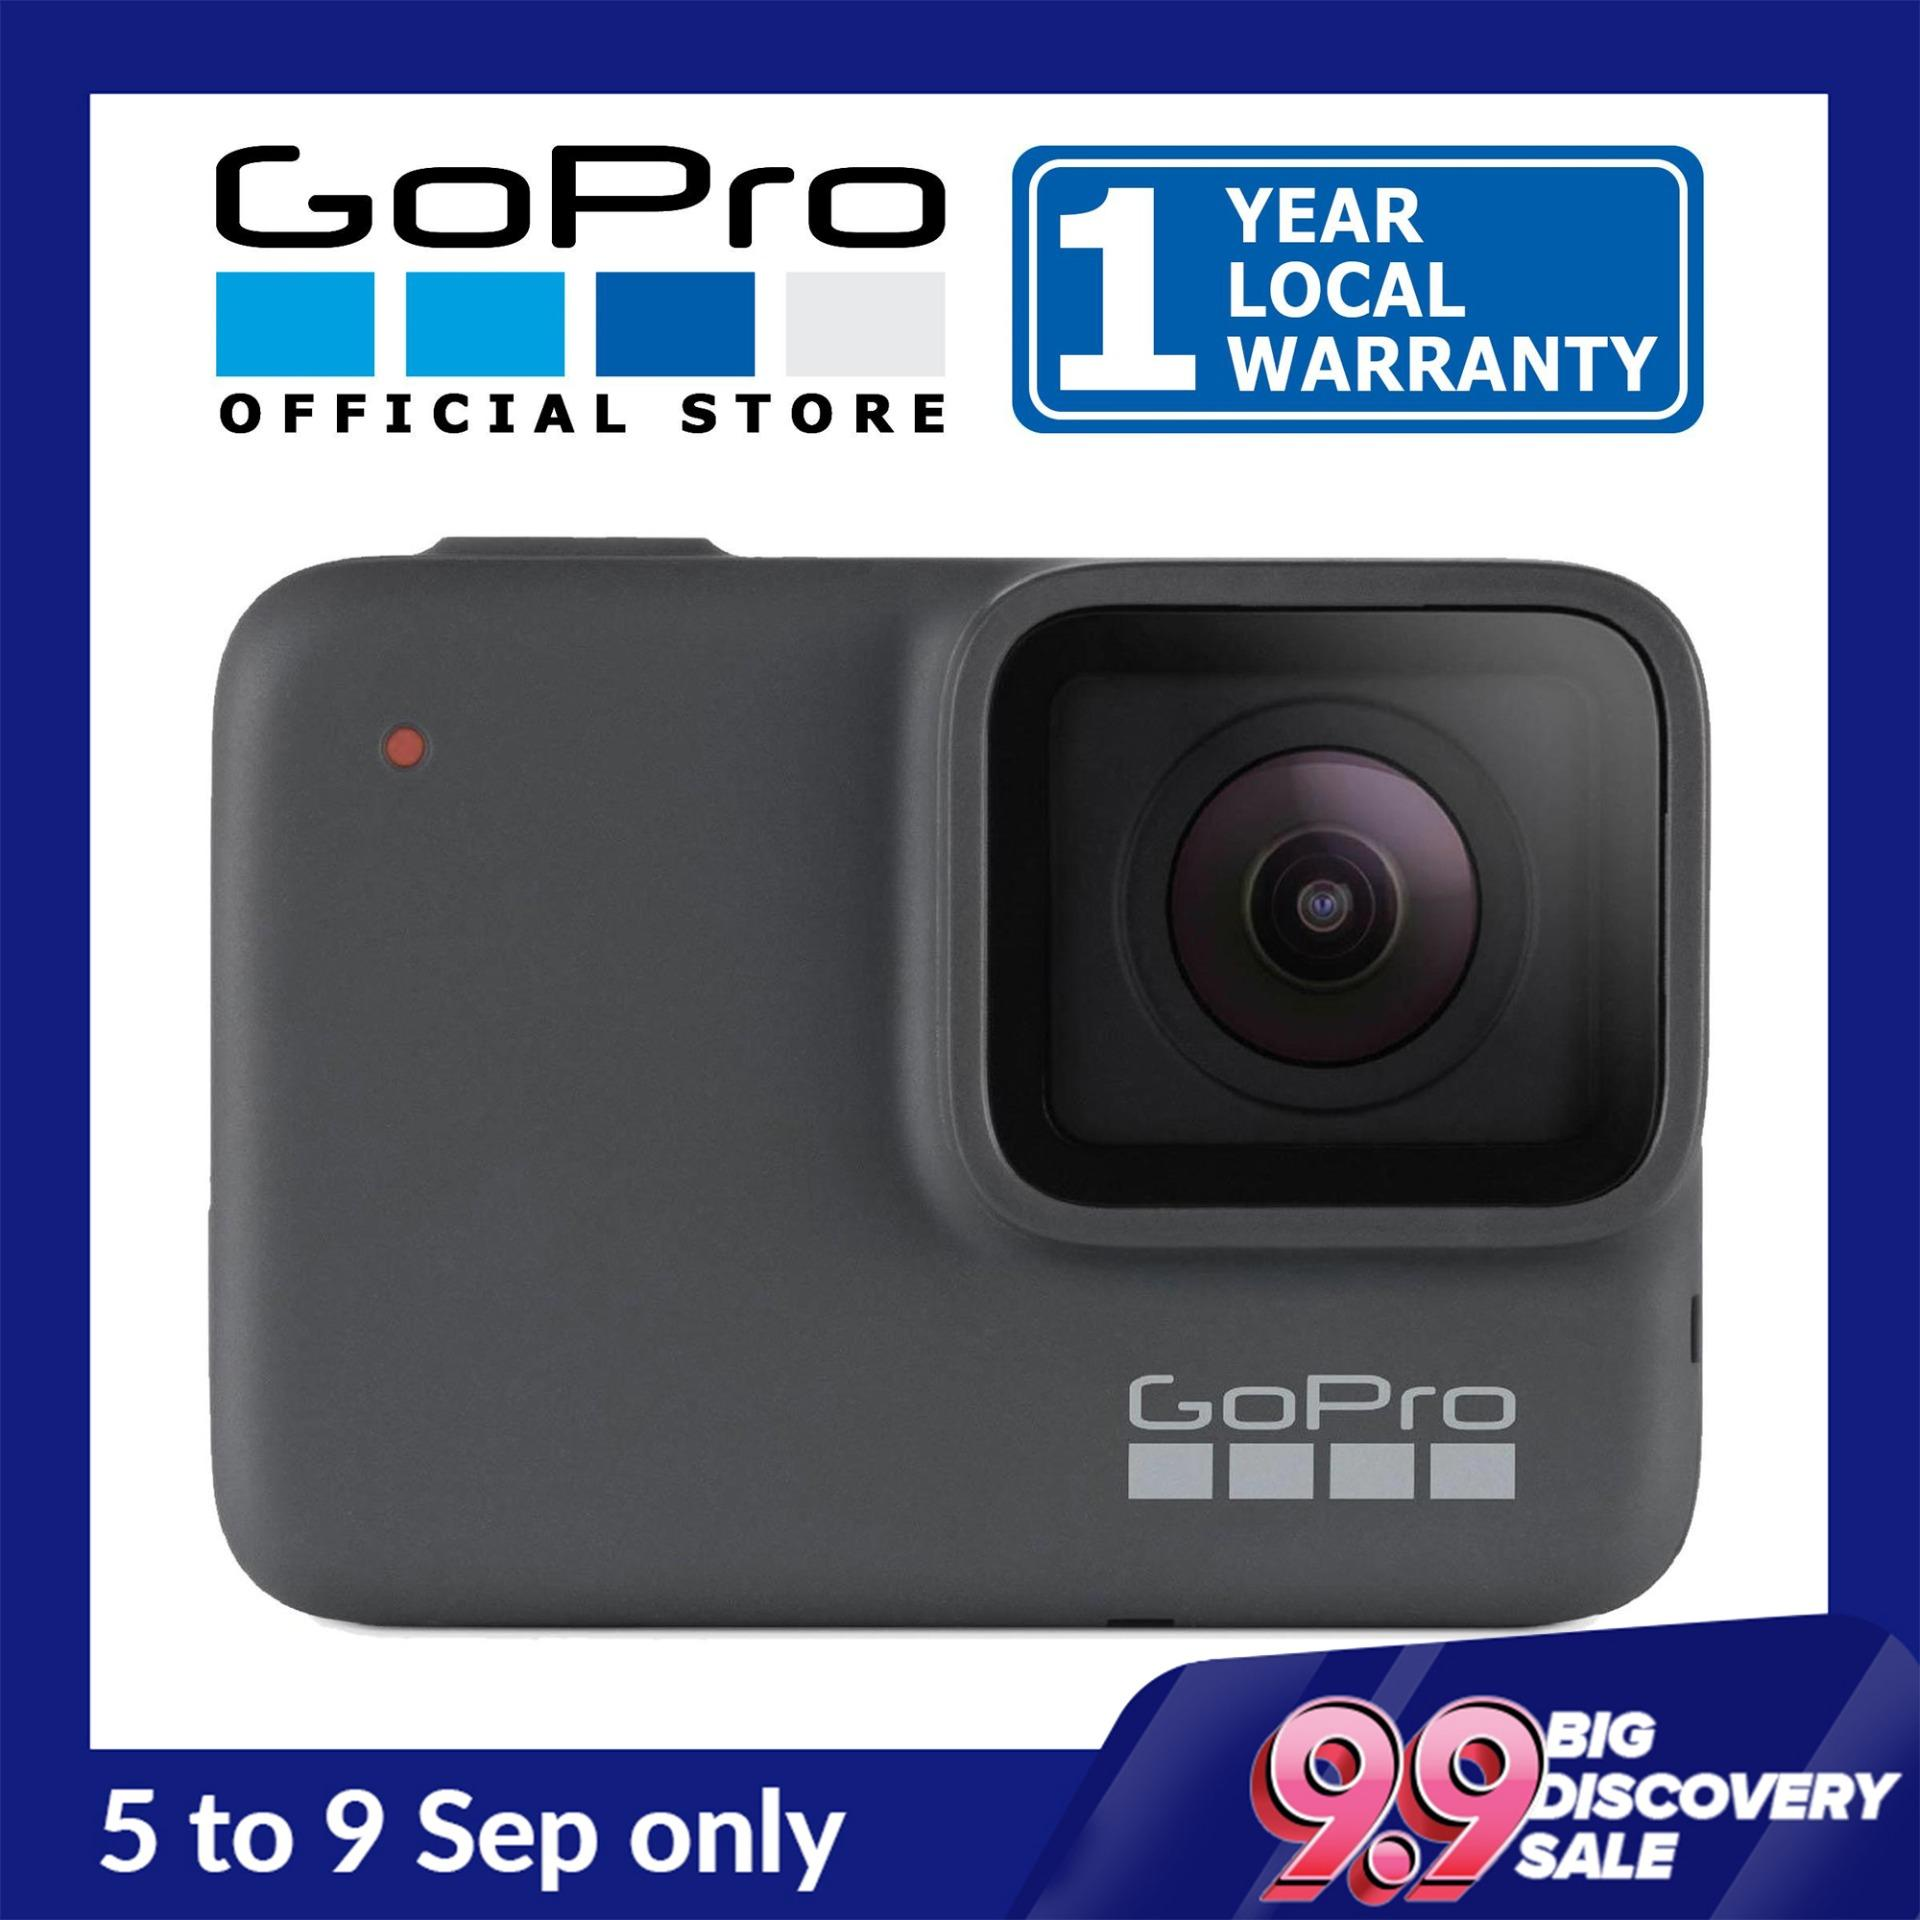 Gopro Hero 7 Silver Price In Singapore Outlet Sg